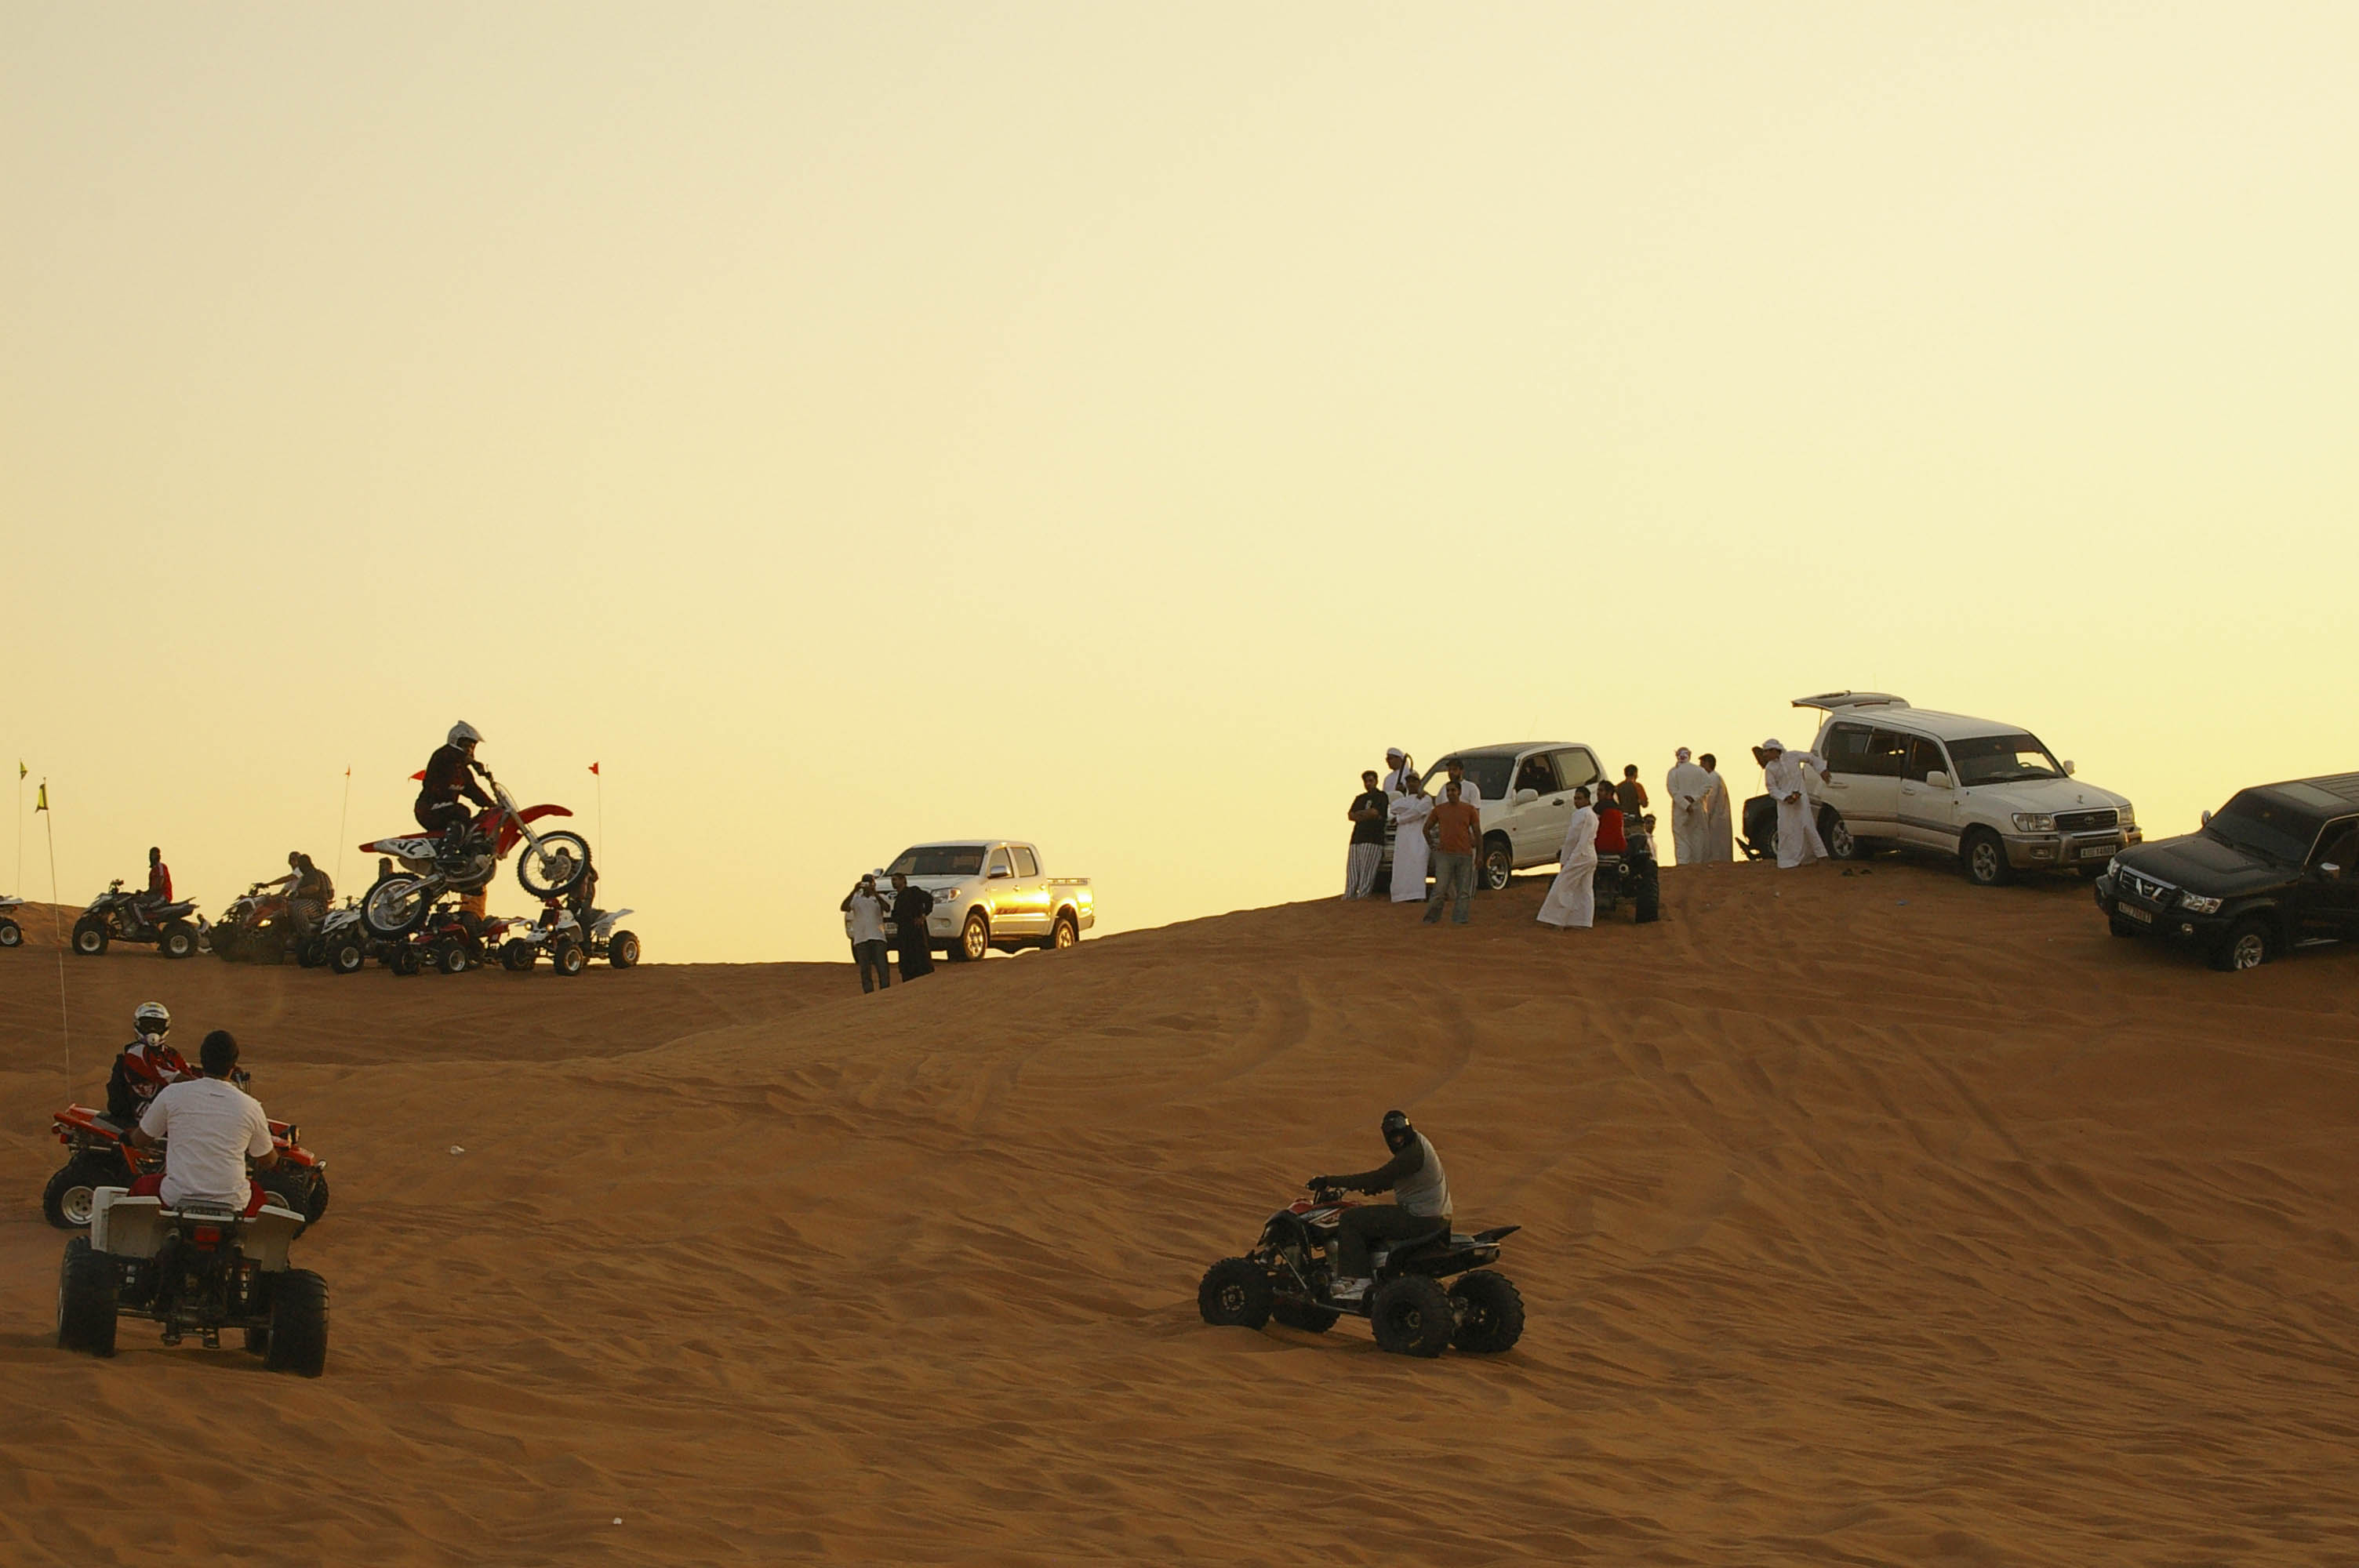 motorbikes and quad riding ride, sand dunes in desert of Dubai, UAE, November 2007